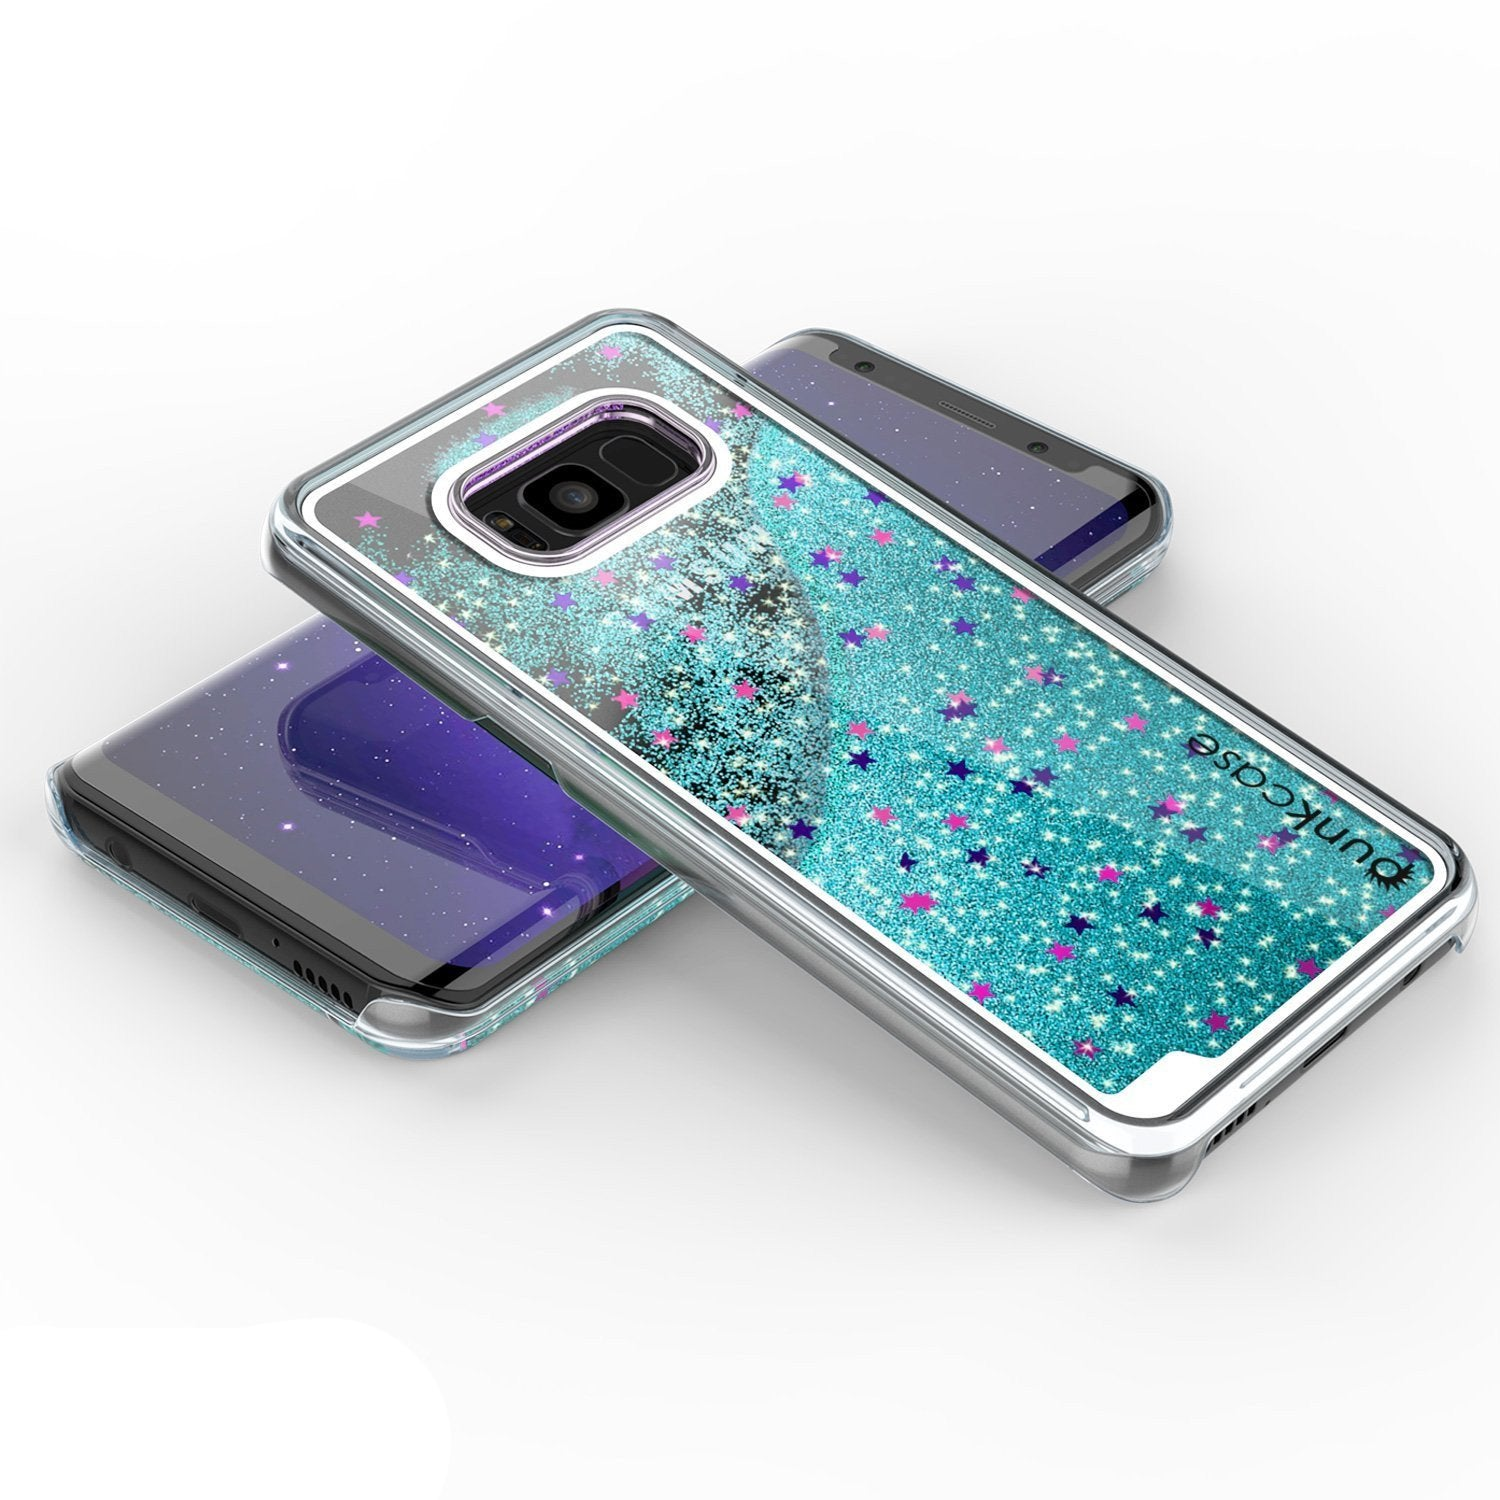 S8 Plus Case, Punkcase Liquid Teal Series Protective Dual Layer Floating Glitter Cover